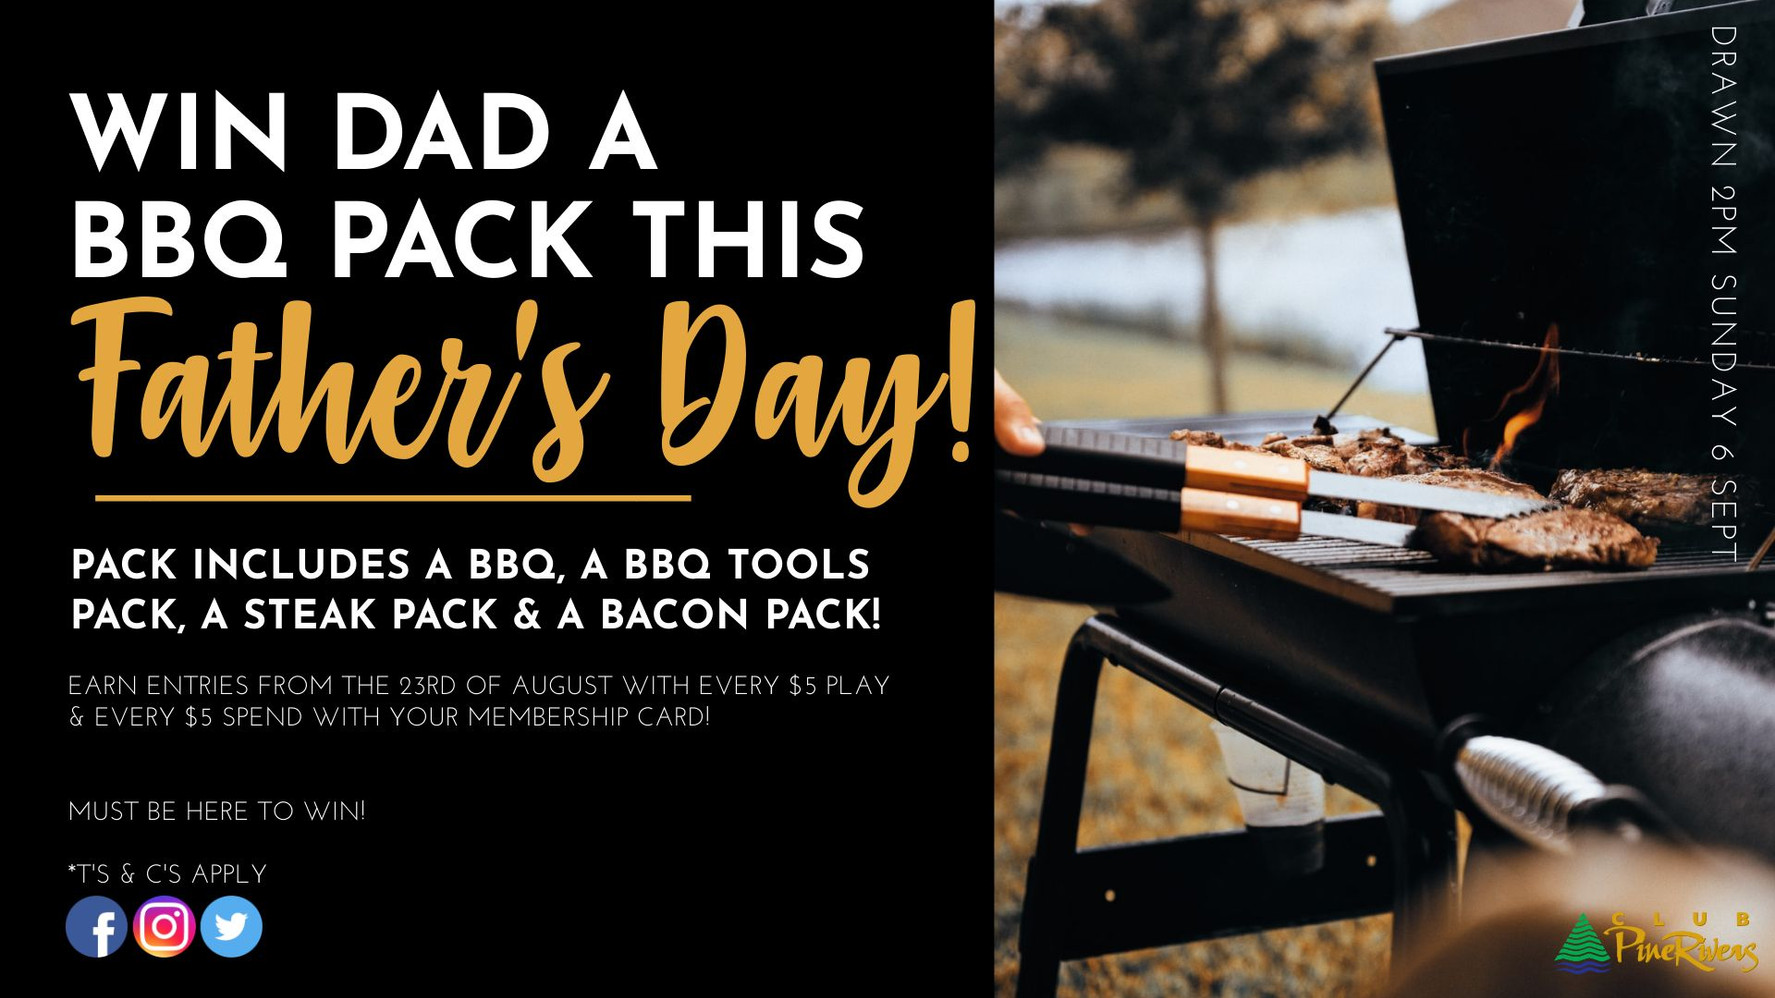 Win dad a BBQ Pack